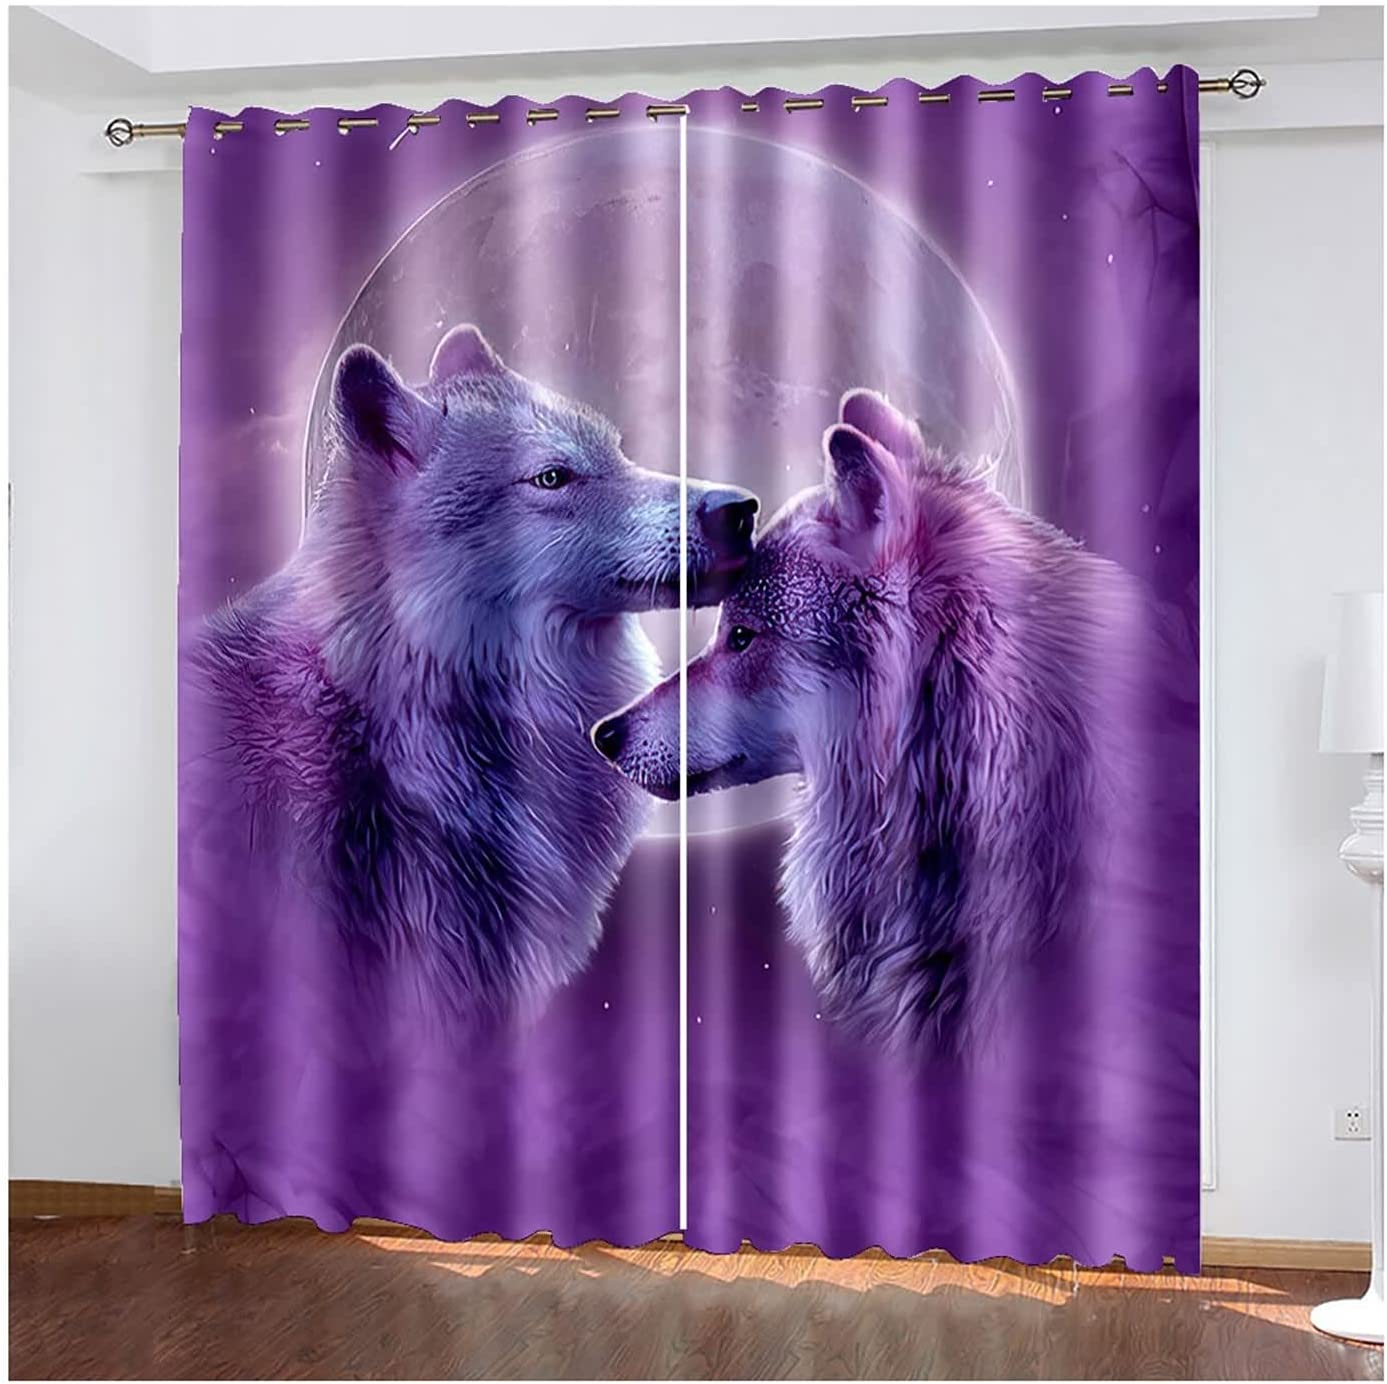 Room Darkening Curtains 2 Panels Wol supreme Curtain Bedroom Blackout New Orleans Mall